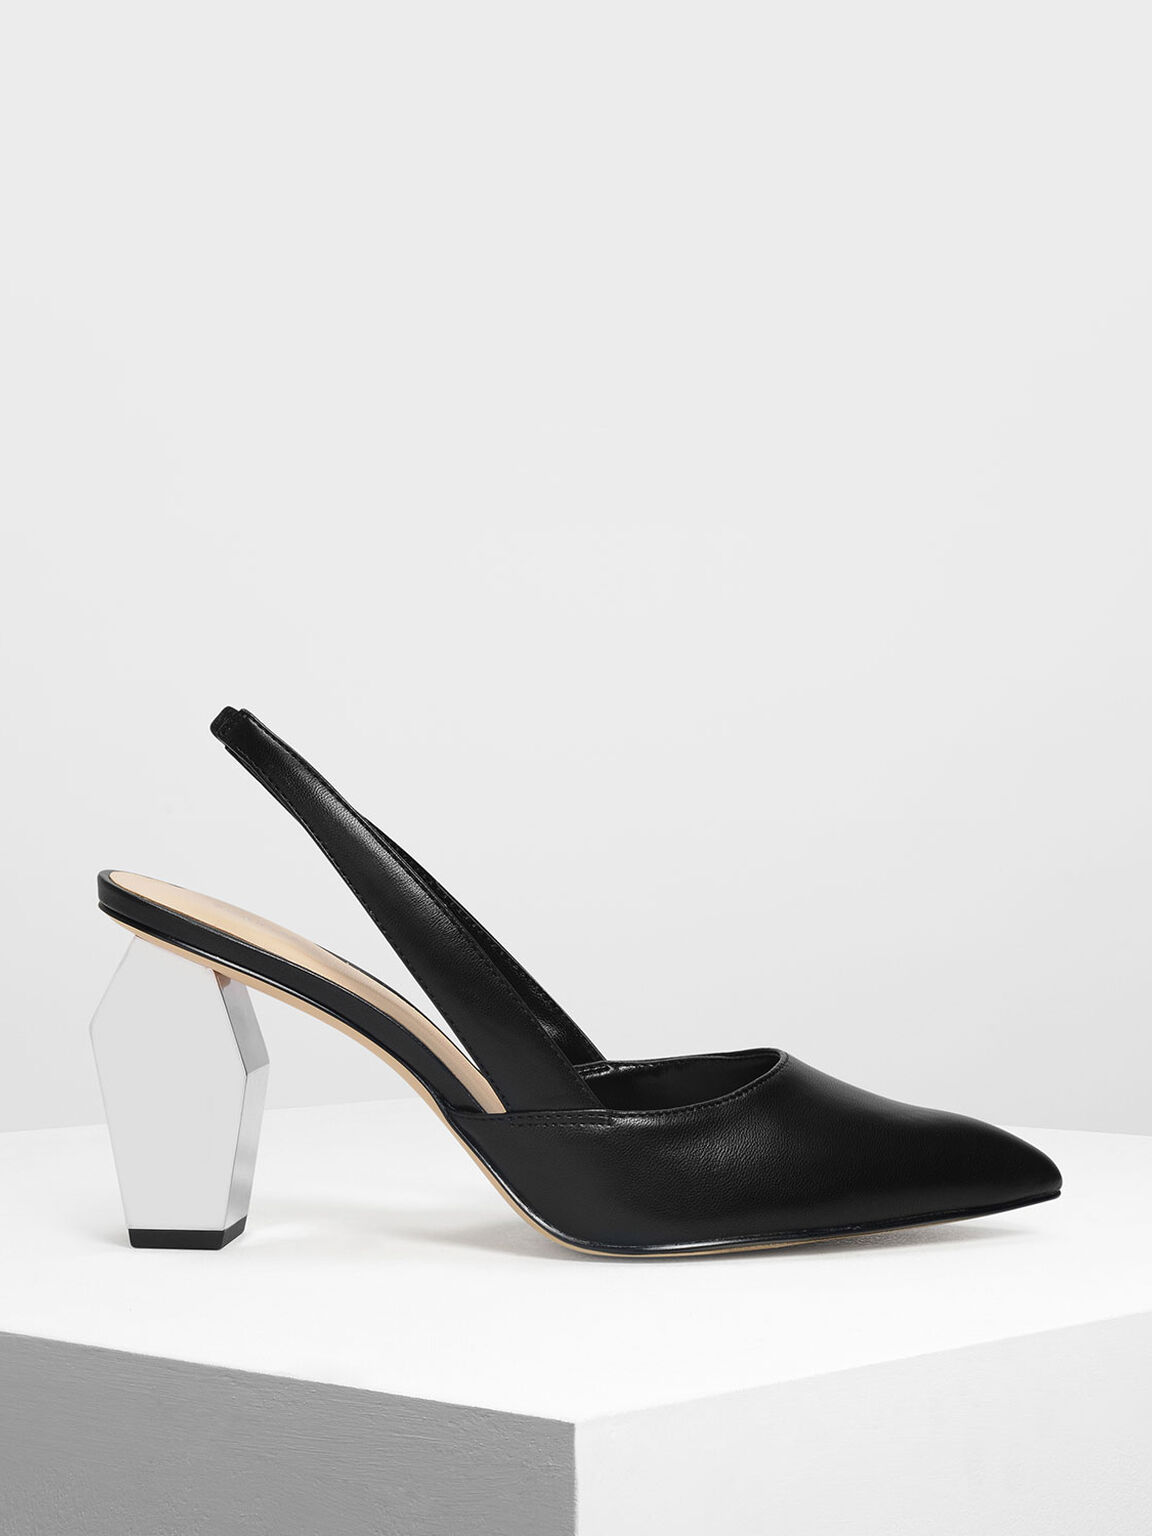 Geometric Chrome Heel Slingbacks, Black, hi-res